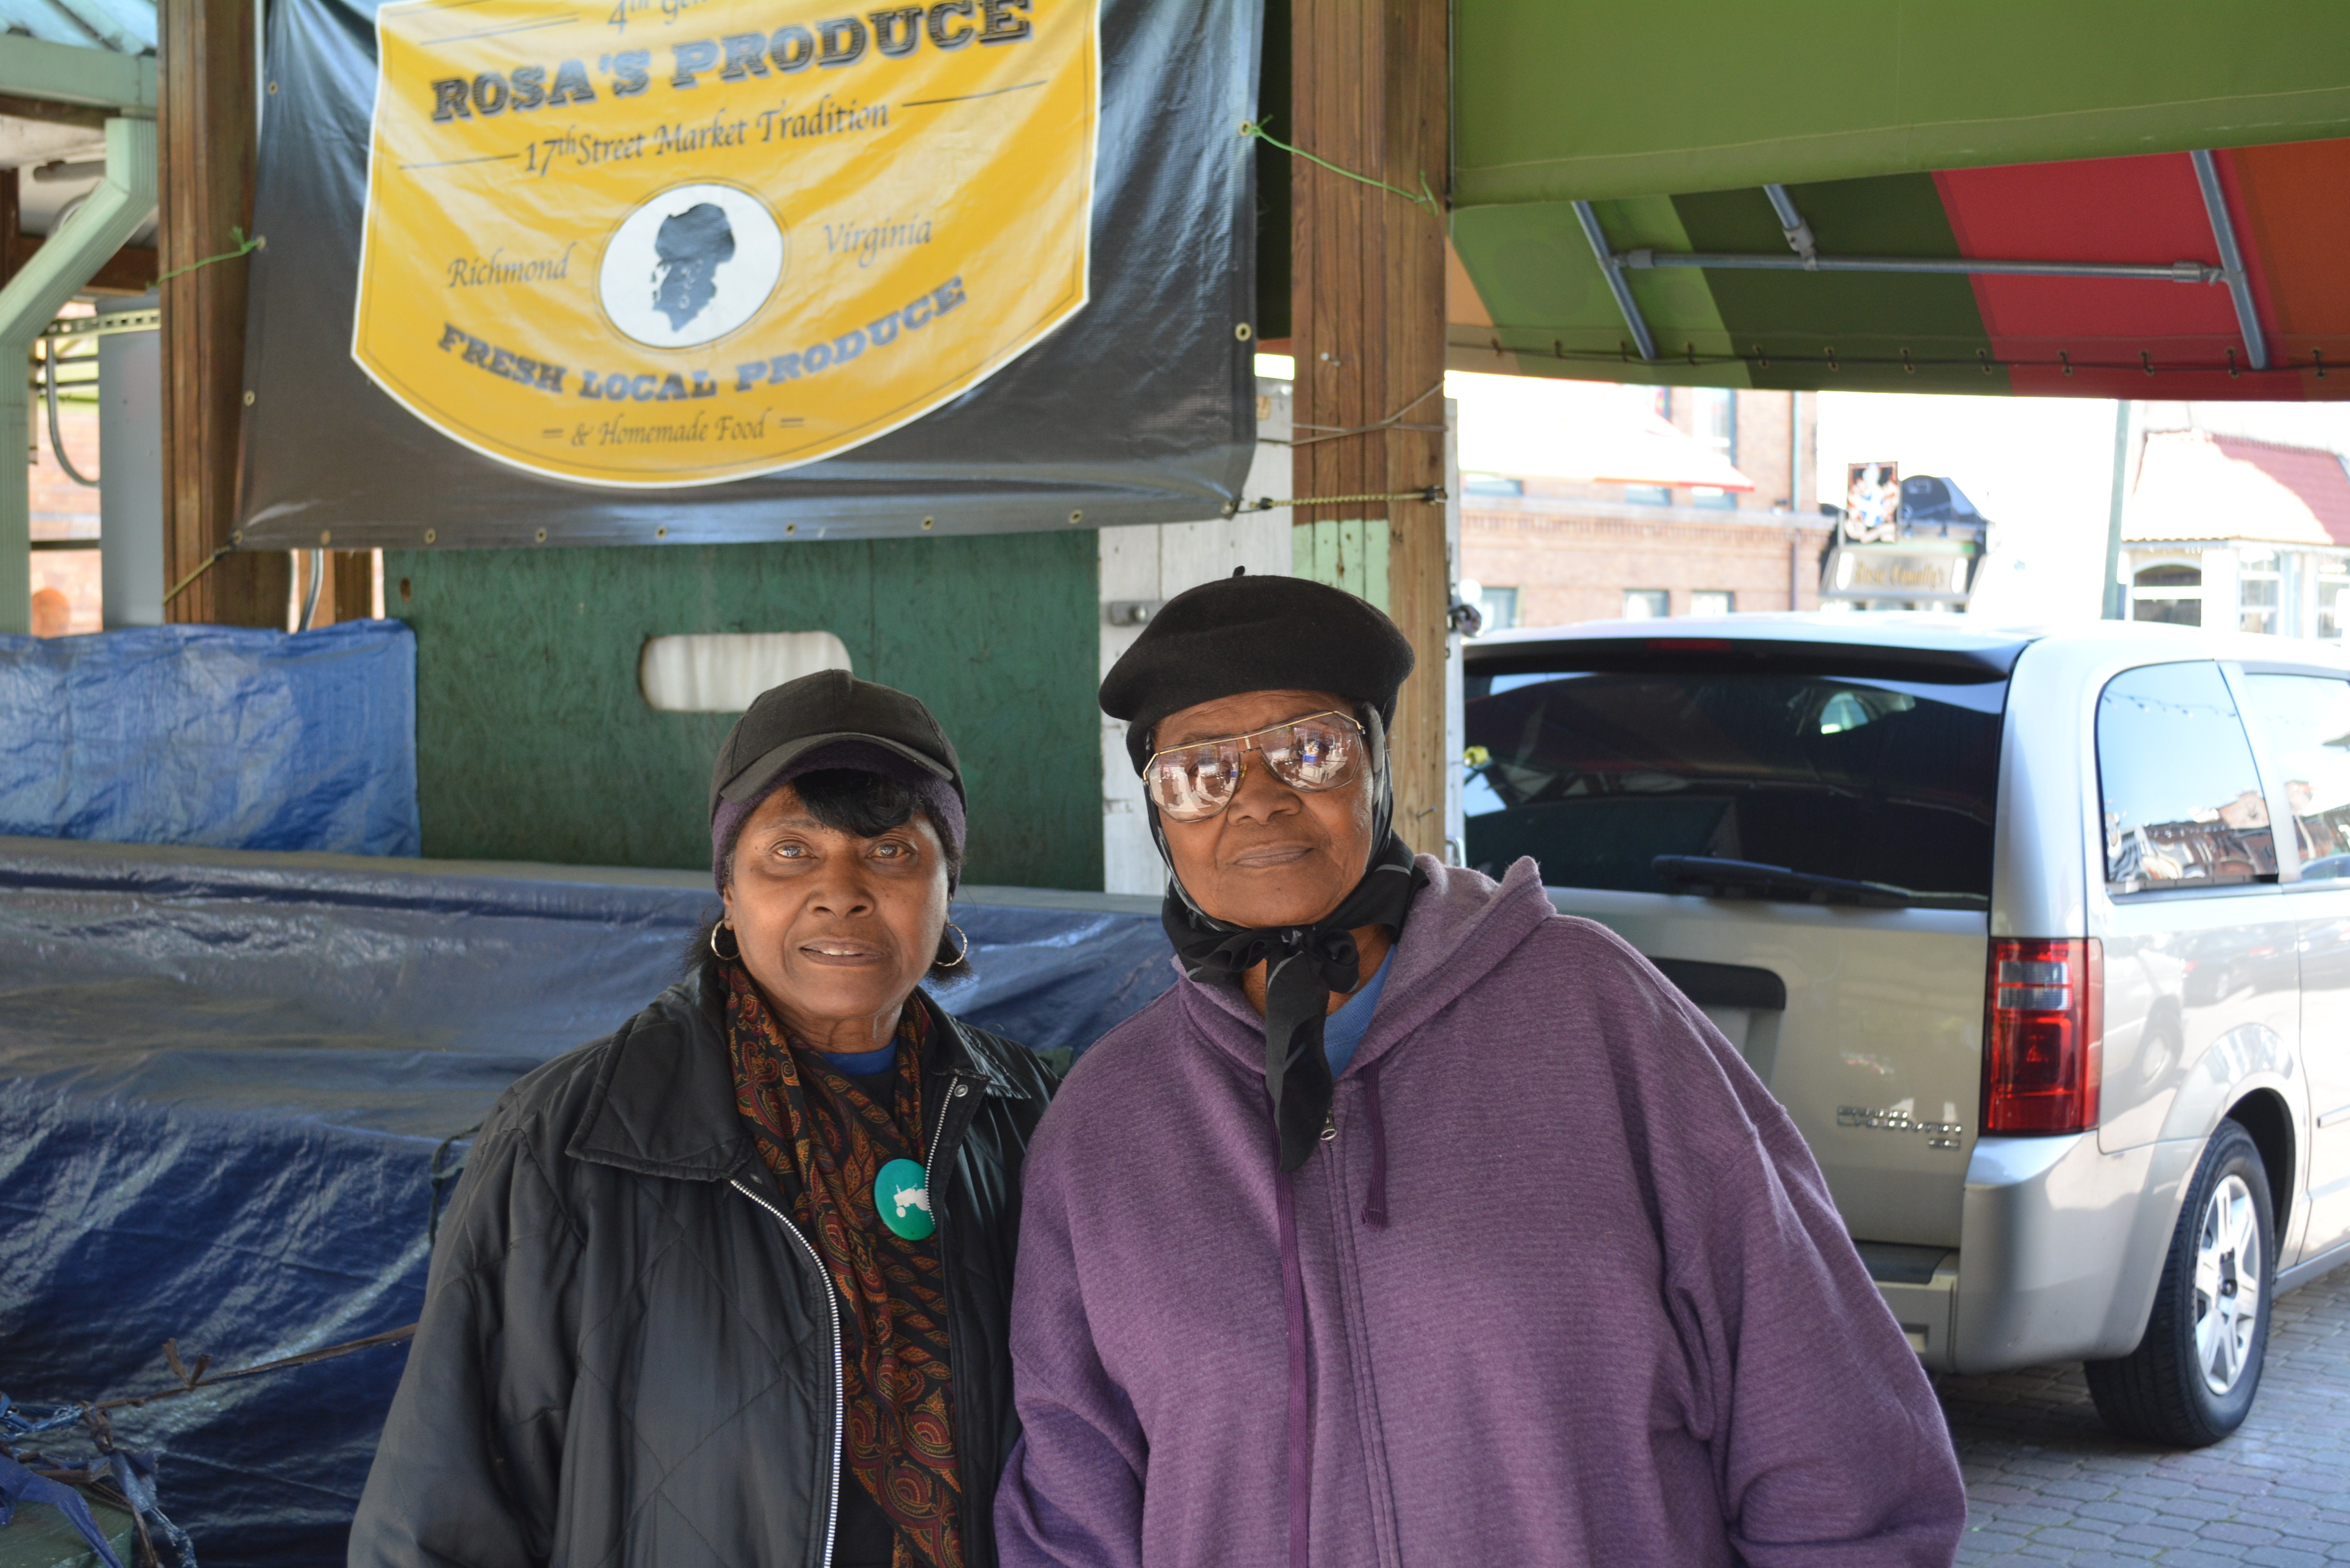 Sisters Rosa Fleming (left) and Evelyn Allen (right) have kept their family legacy alive at the 17th Street Market. Photo by Garrett Fundakowski.